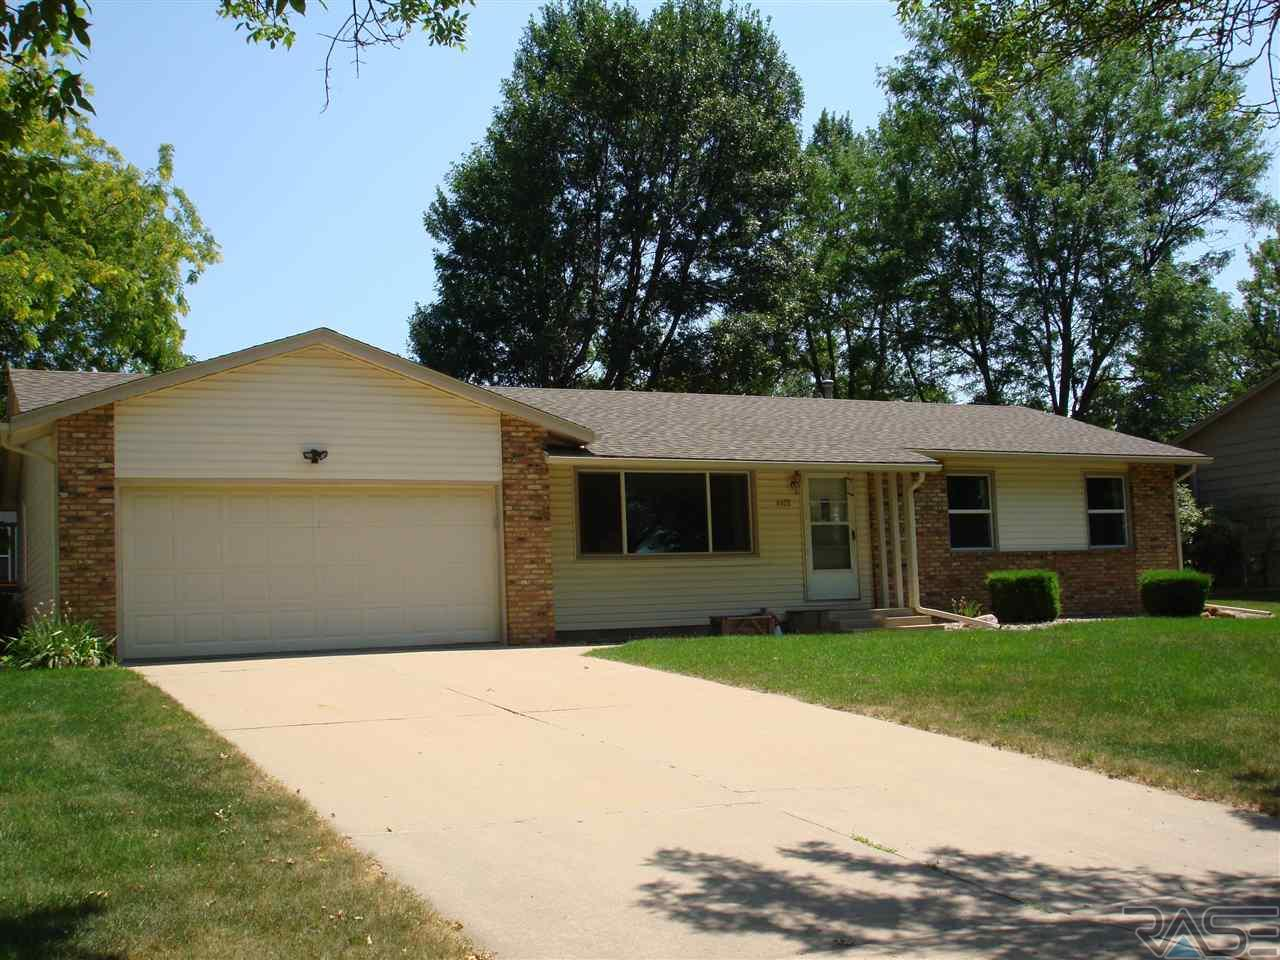 4408 S Hickory Hill Rd, Sioux Falls, SD 57103